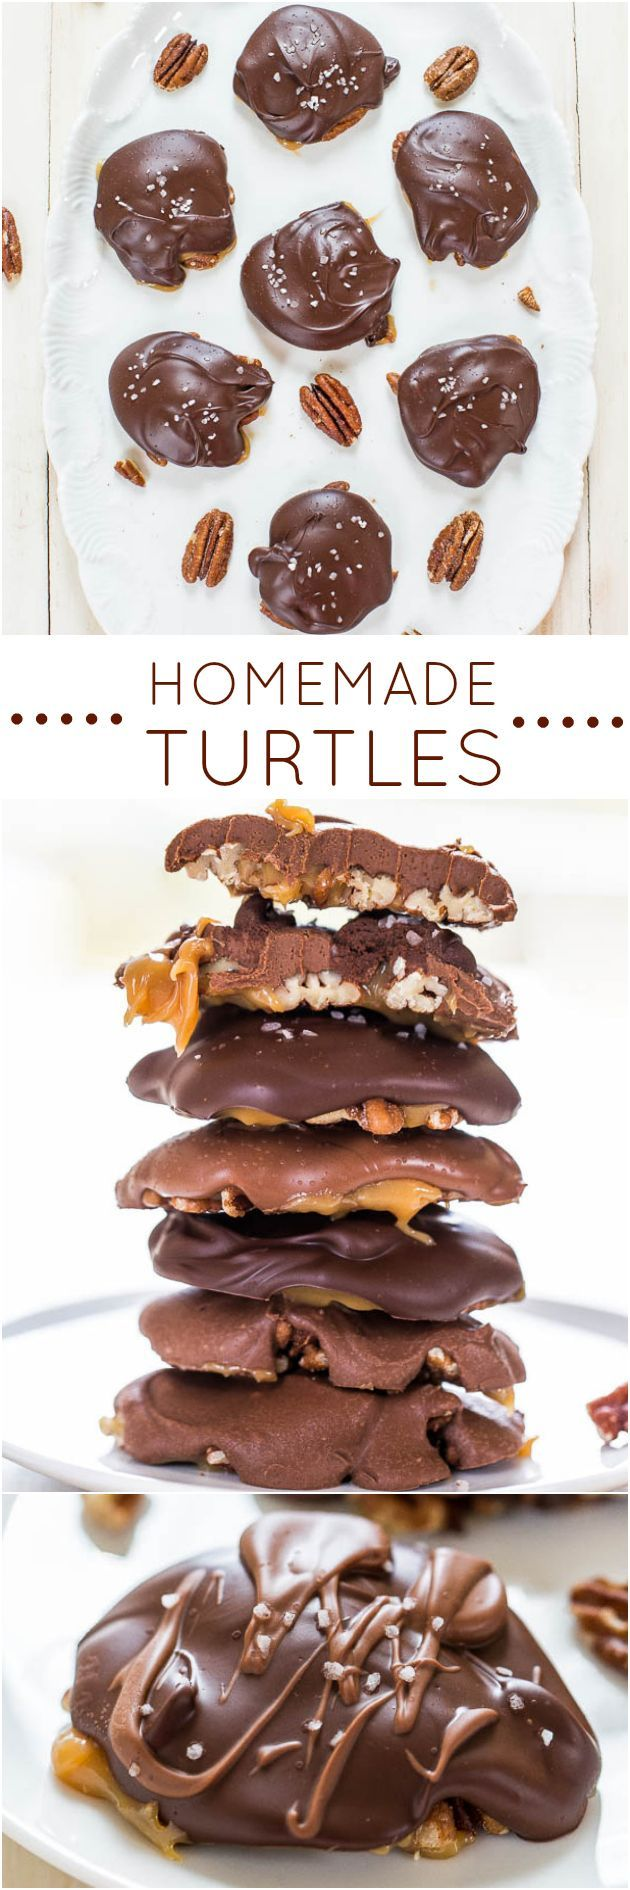 Homemade Turtles - Fast, easy, no-bake and just 4 ingredients! [ MyGourmetCafe.com ] #holiday #recipes #gourmet